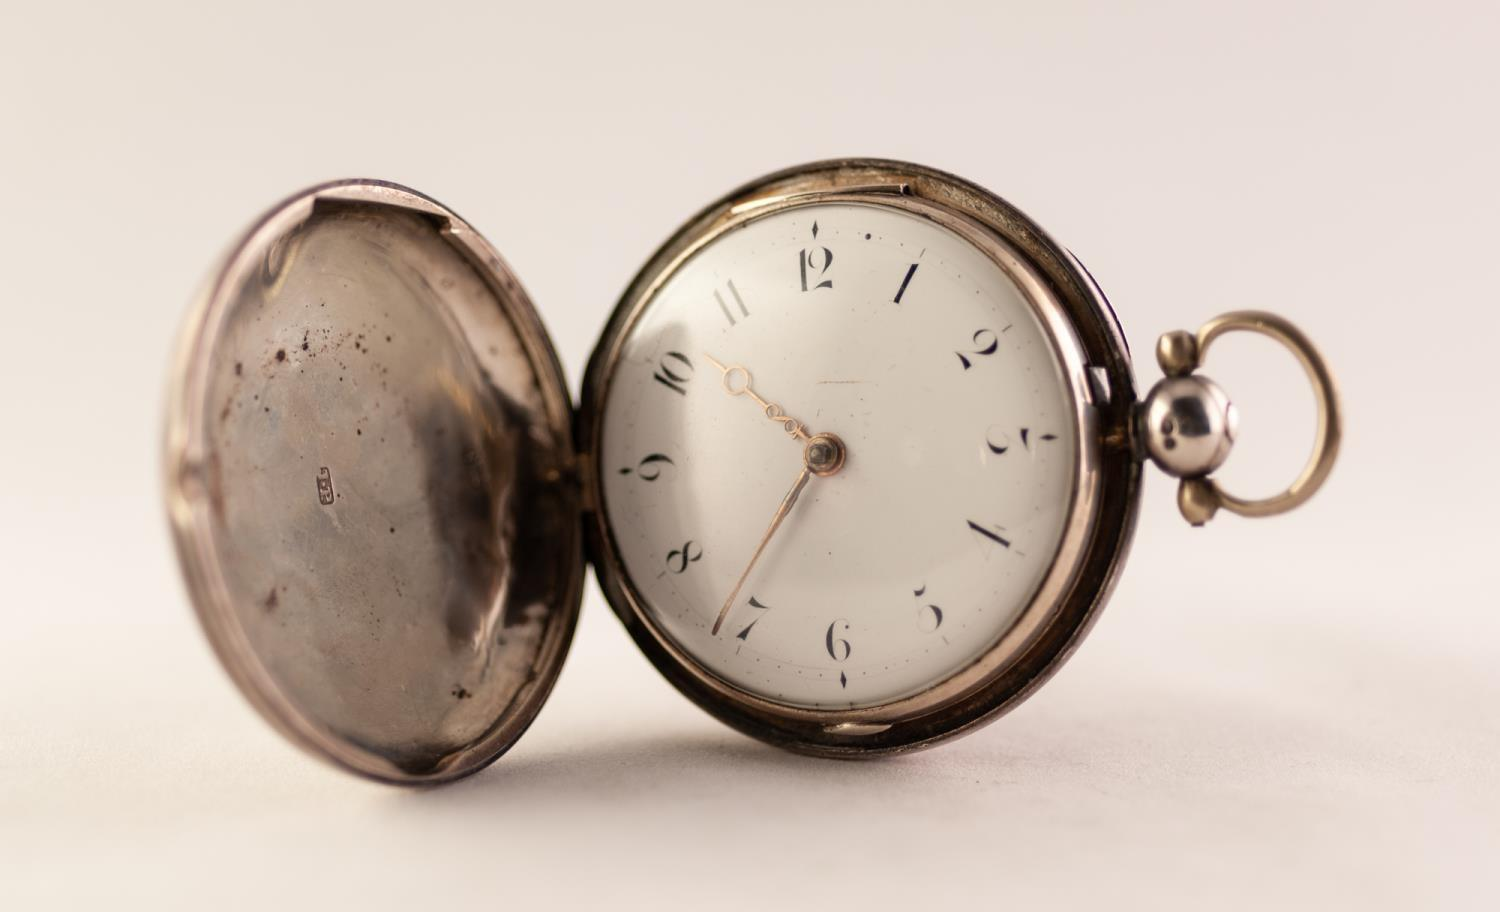 Lot 20 - WILL?M READ, SILVER FULL HUNTER POCKET WATCH, fusee movement dated 1819, white enamel Arabic dial